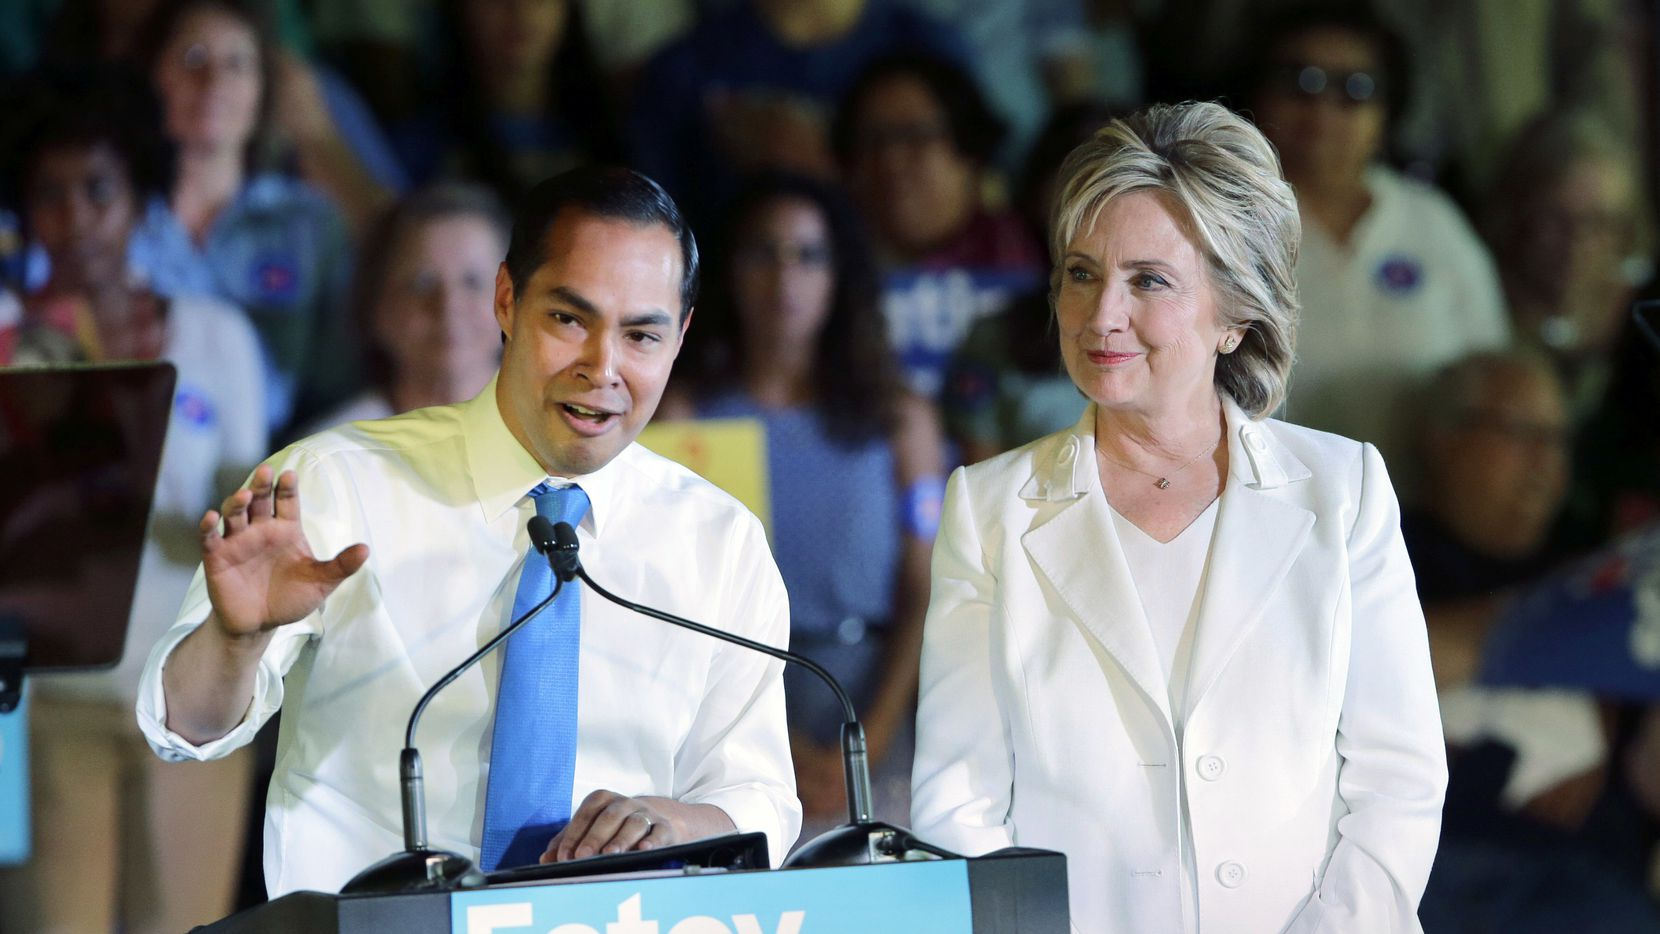 Housing and Urban Development Secretary Julian Castro campaigned for Democratic presidential candidate Hillary Clinton in San Antonio during the 2016 election.